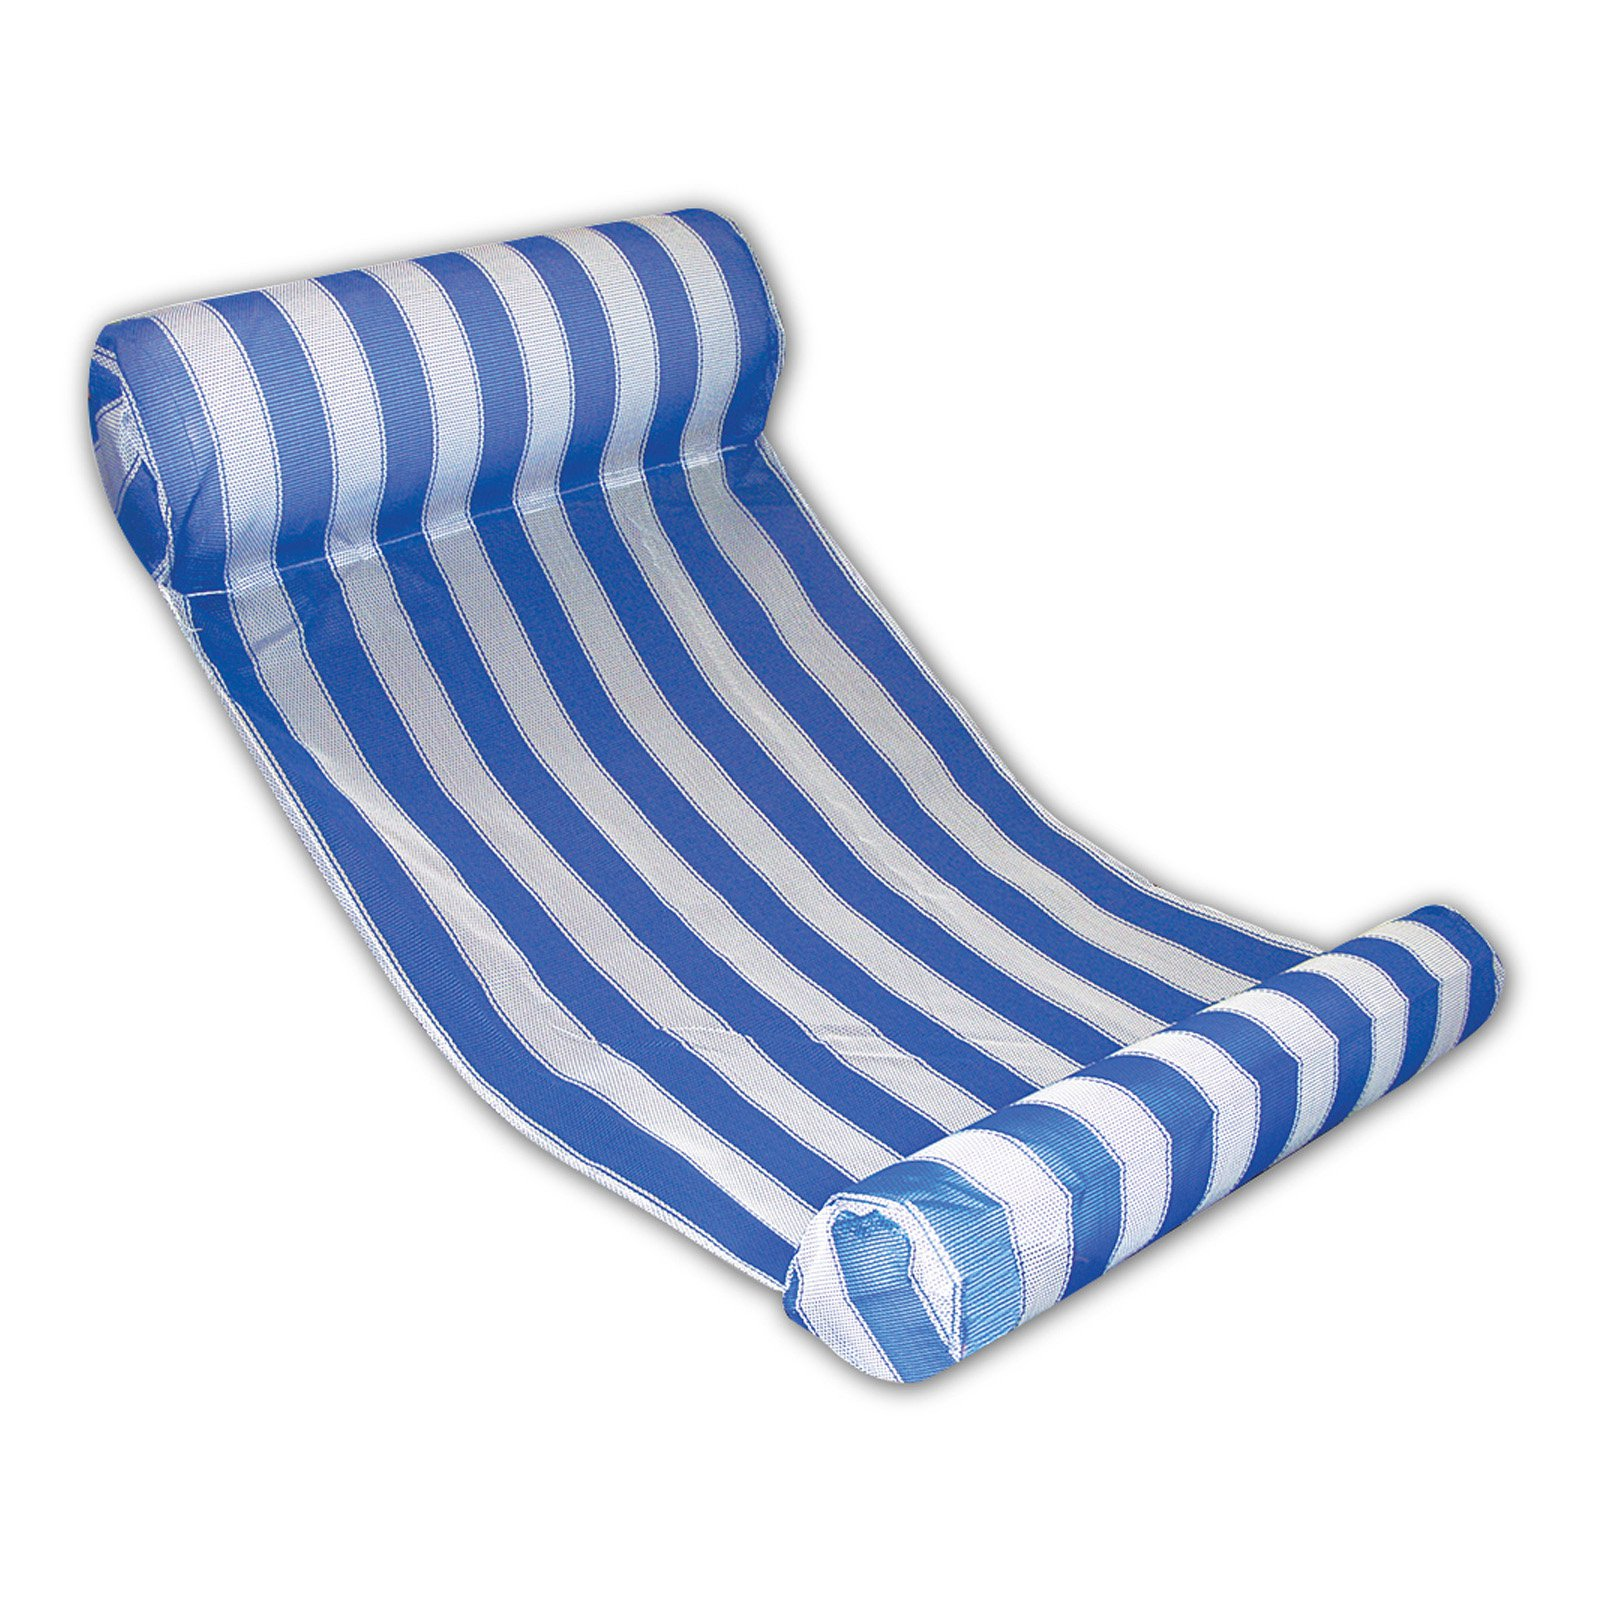 andy inflatable swimming product dhgate sleeping float accessories by chair cheap pool bed air water online toys stripe outdoor lounger hammock mattress floating